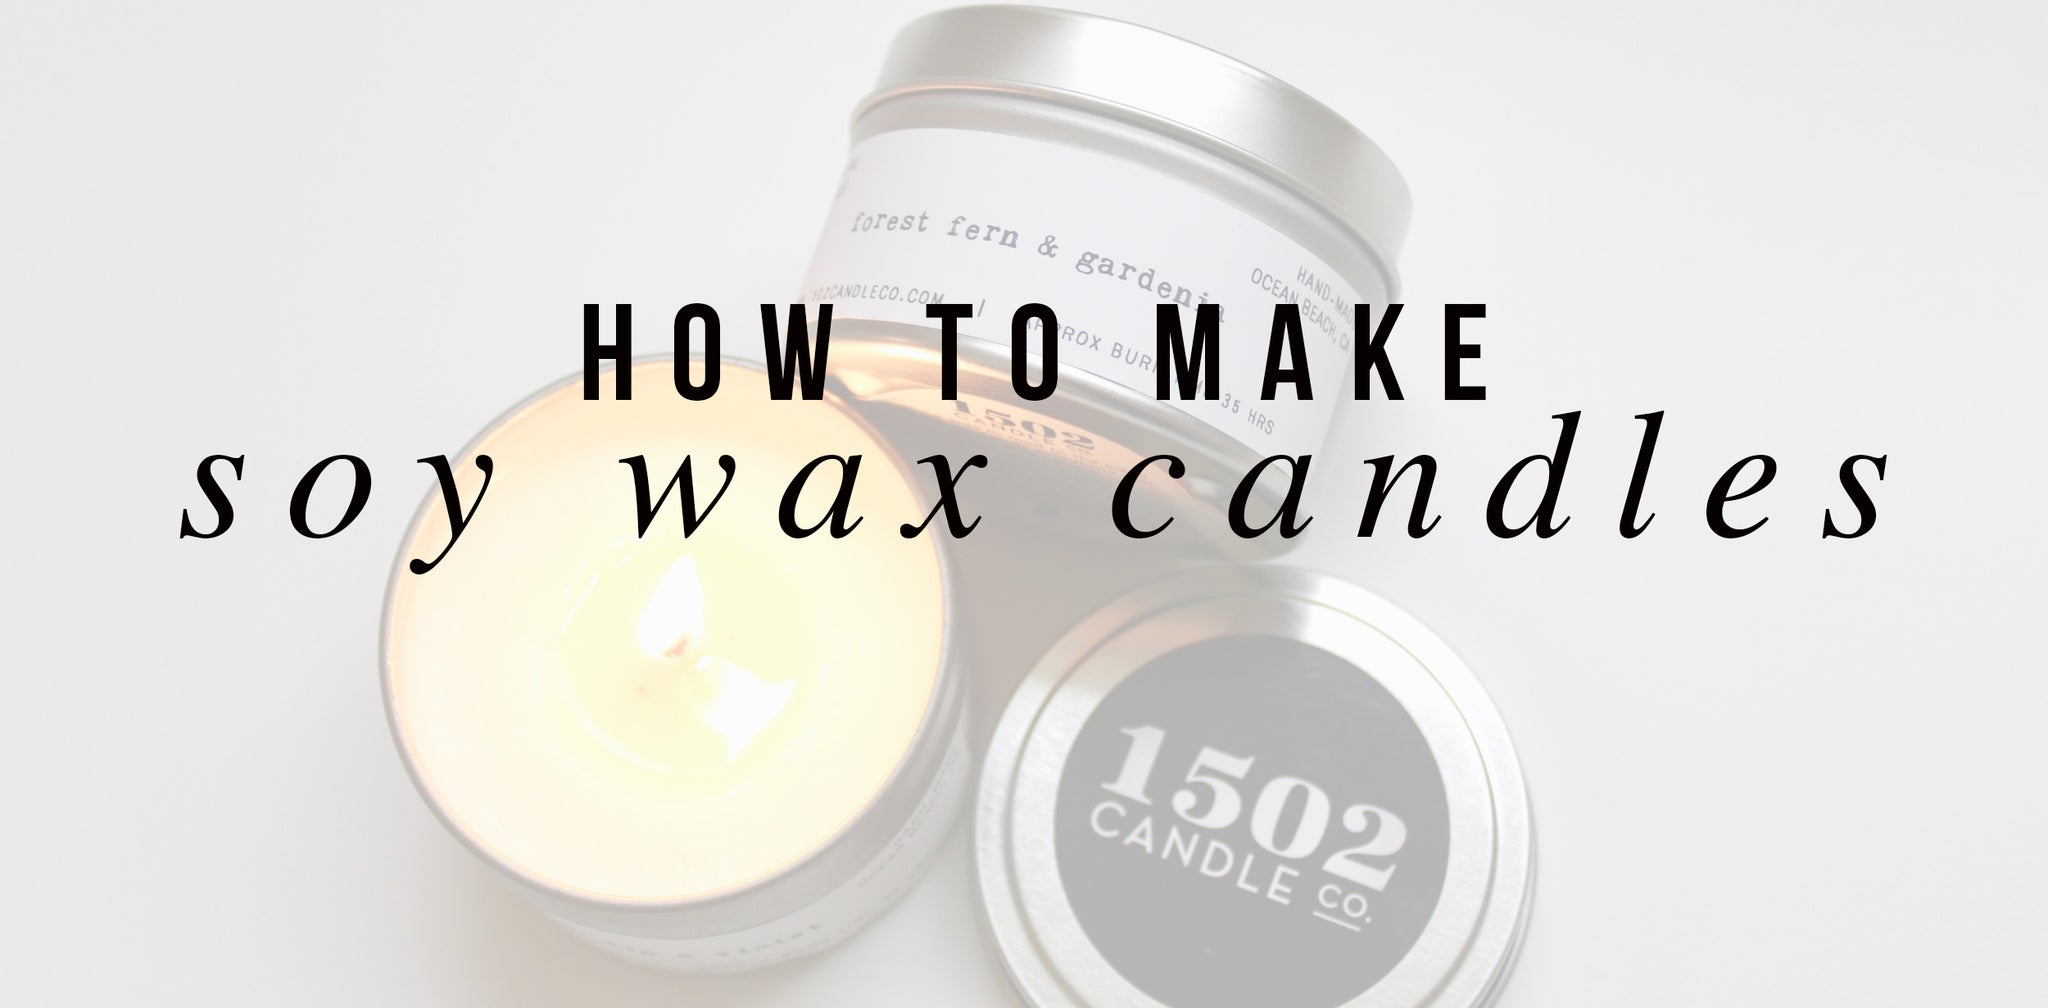 How To Make Soy Wax Candles